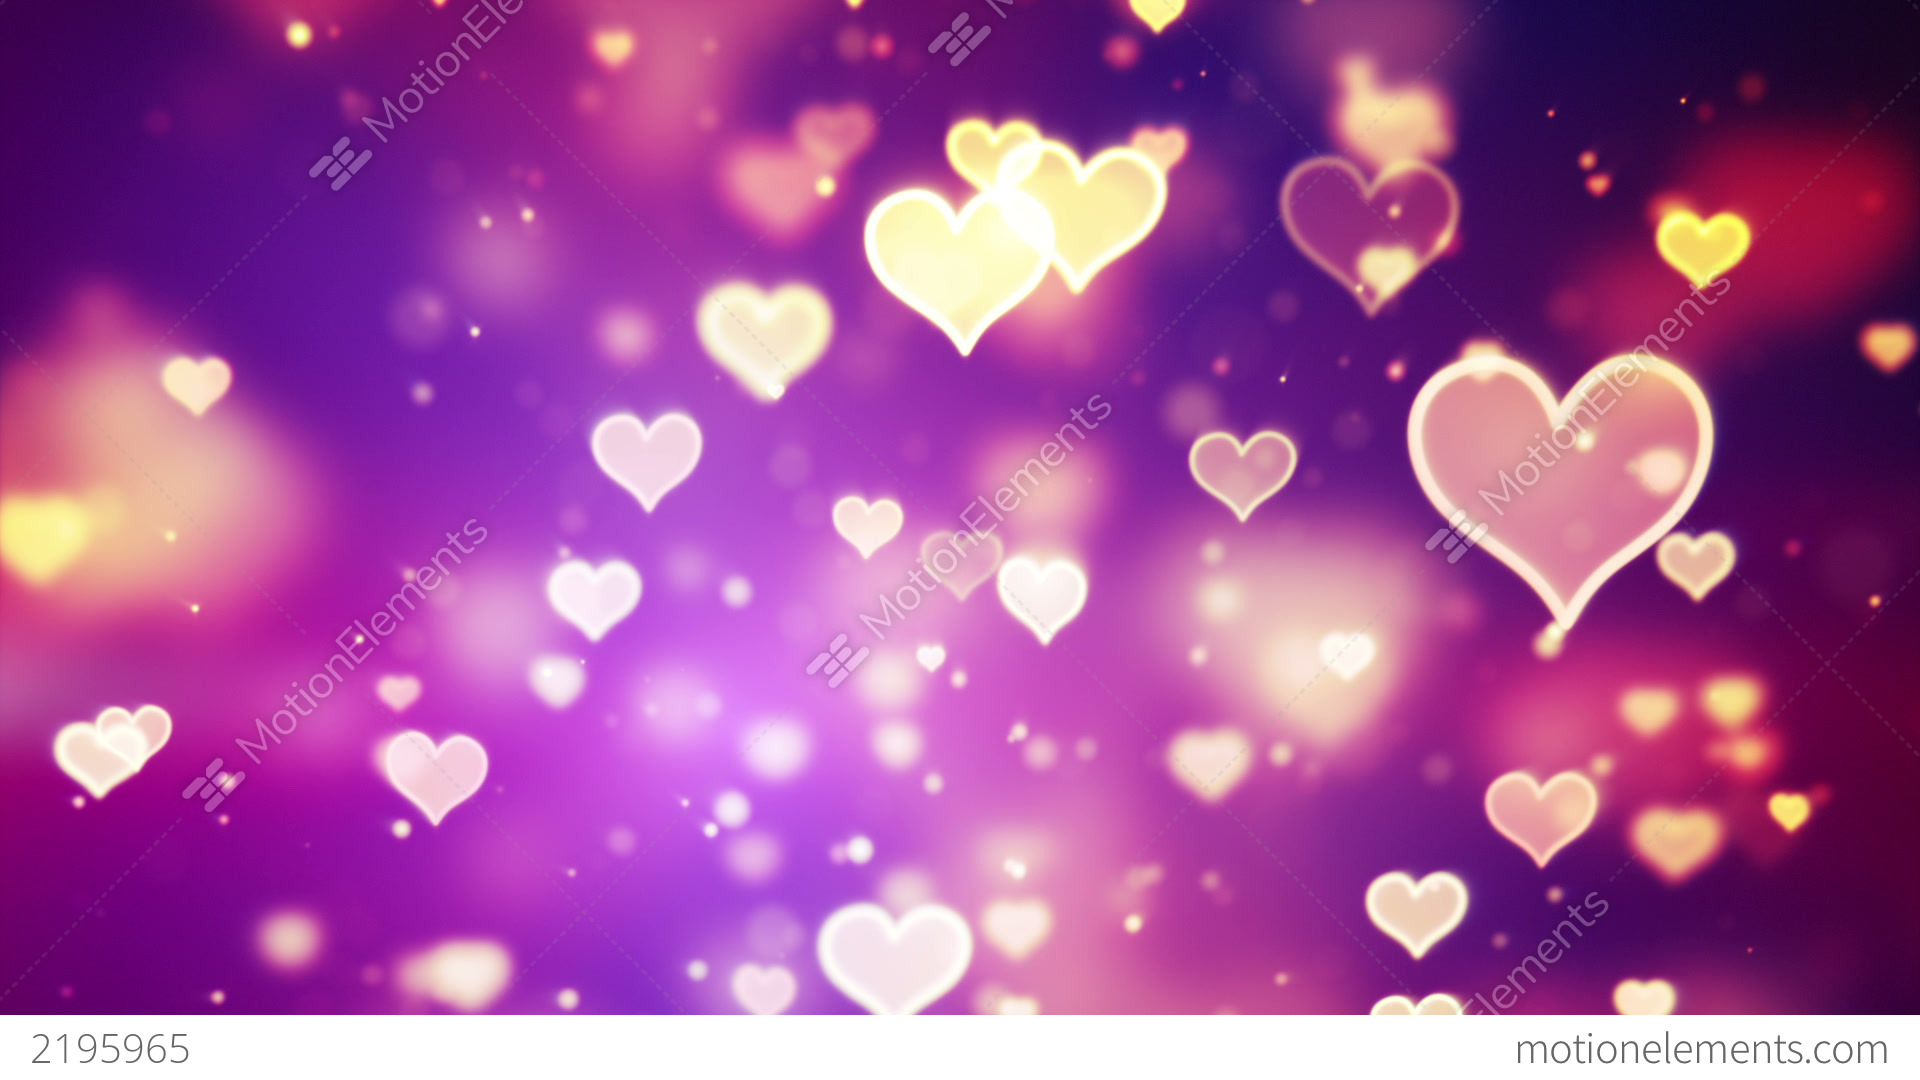 Stock Video 2195965 Shining Hearts Bokeh Loopable Romantic Background